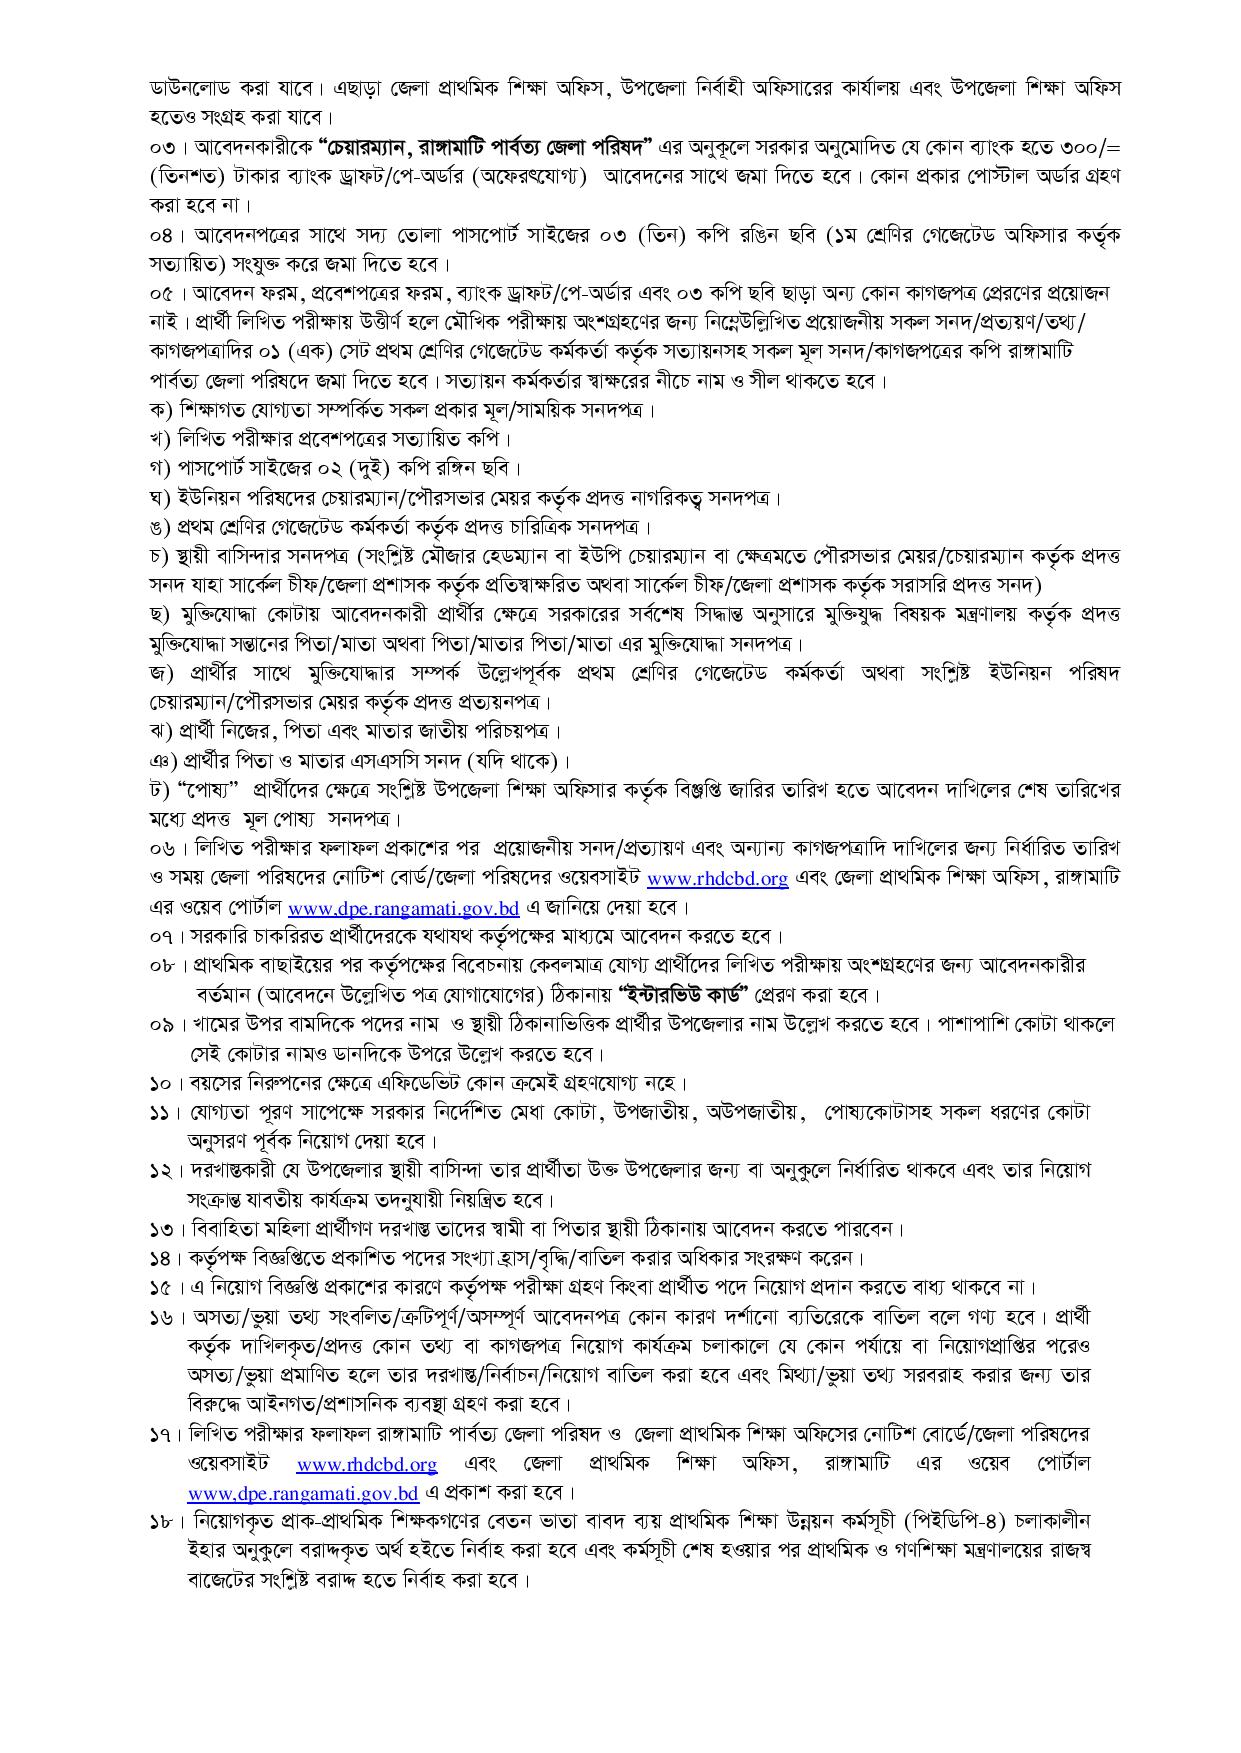 Primary School Teacher Government Job Circular Result 2019 www.dpe.teletalk.com.bd 2